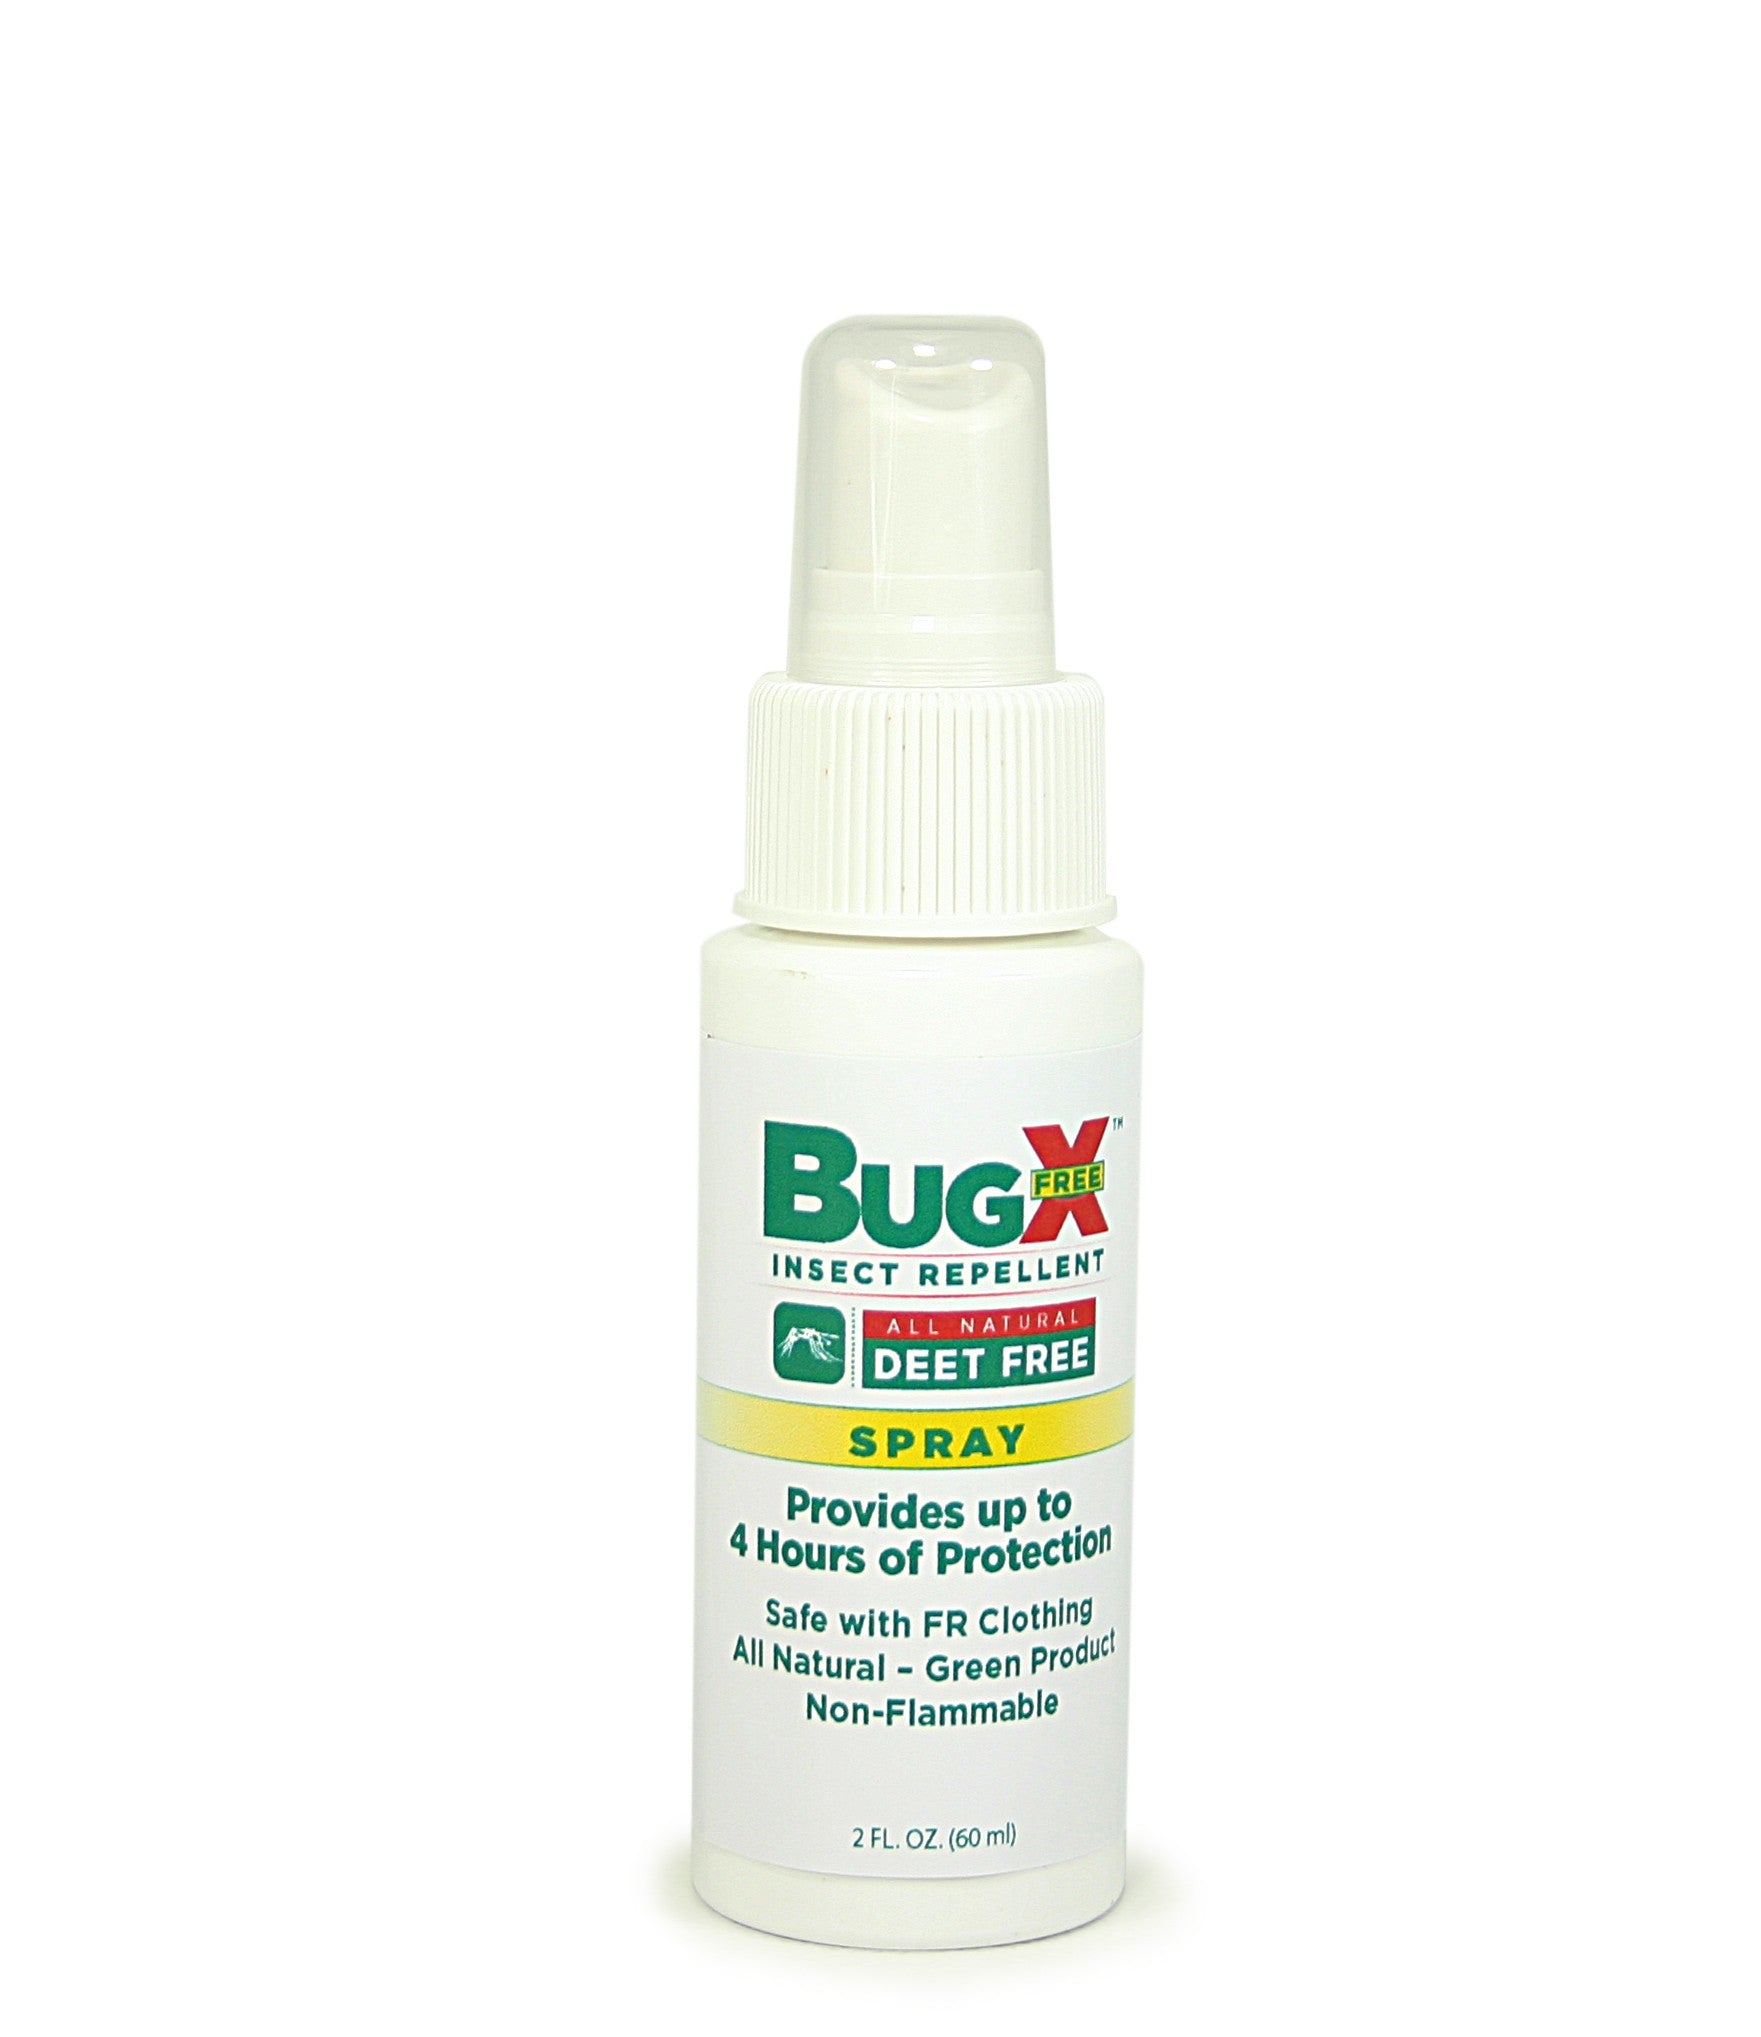 BugX DEET FREE Insect Repellent Spray, 2 Oz. Bottle, Case Of 12 - BS-FAK-18-802-1-FM